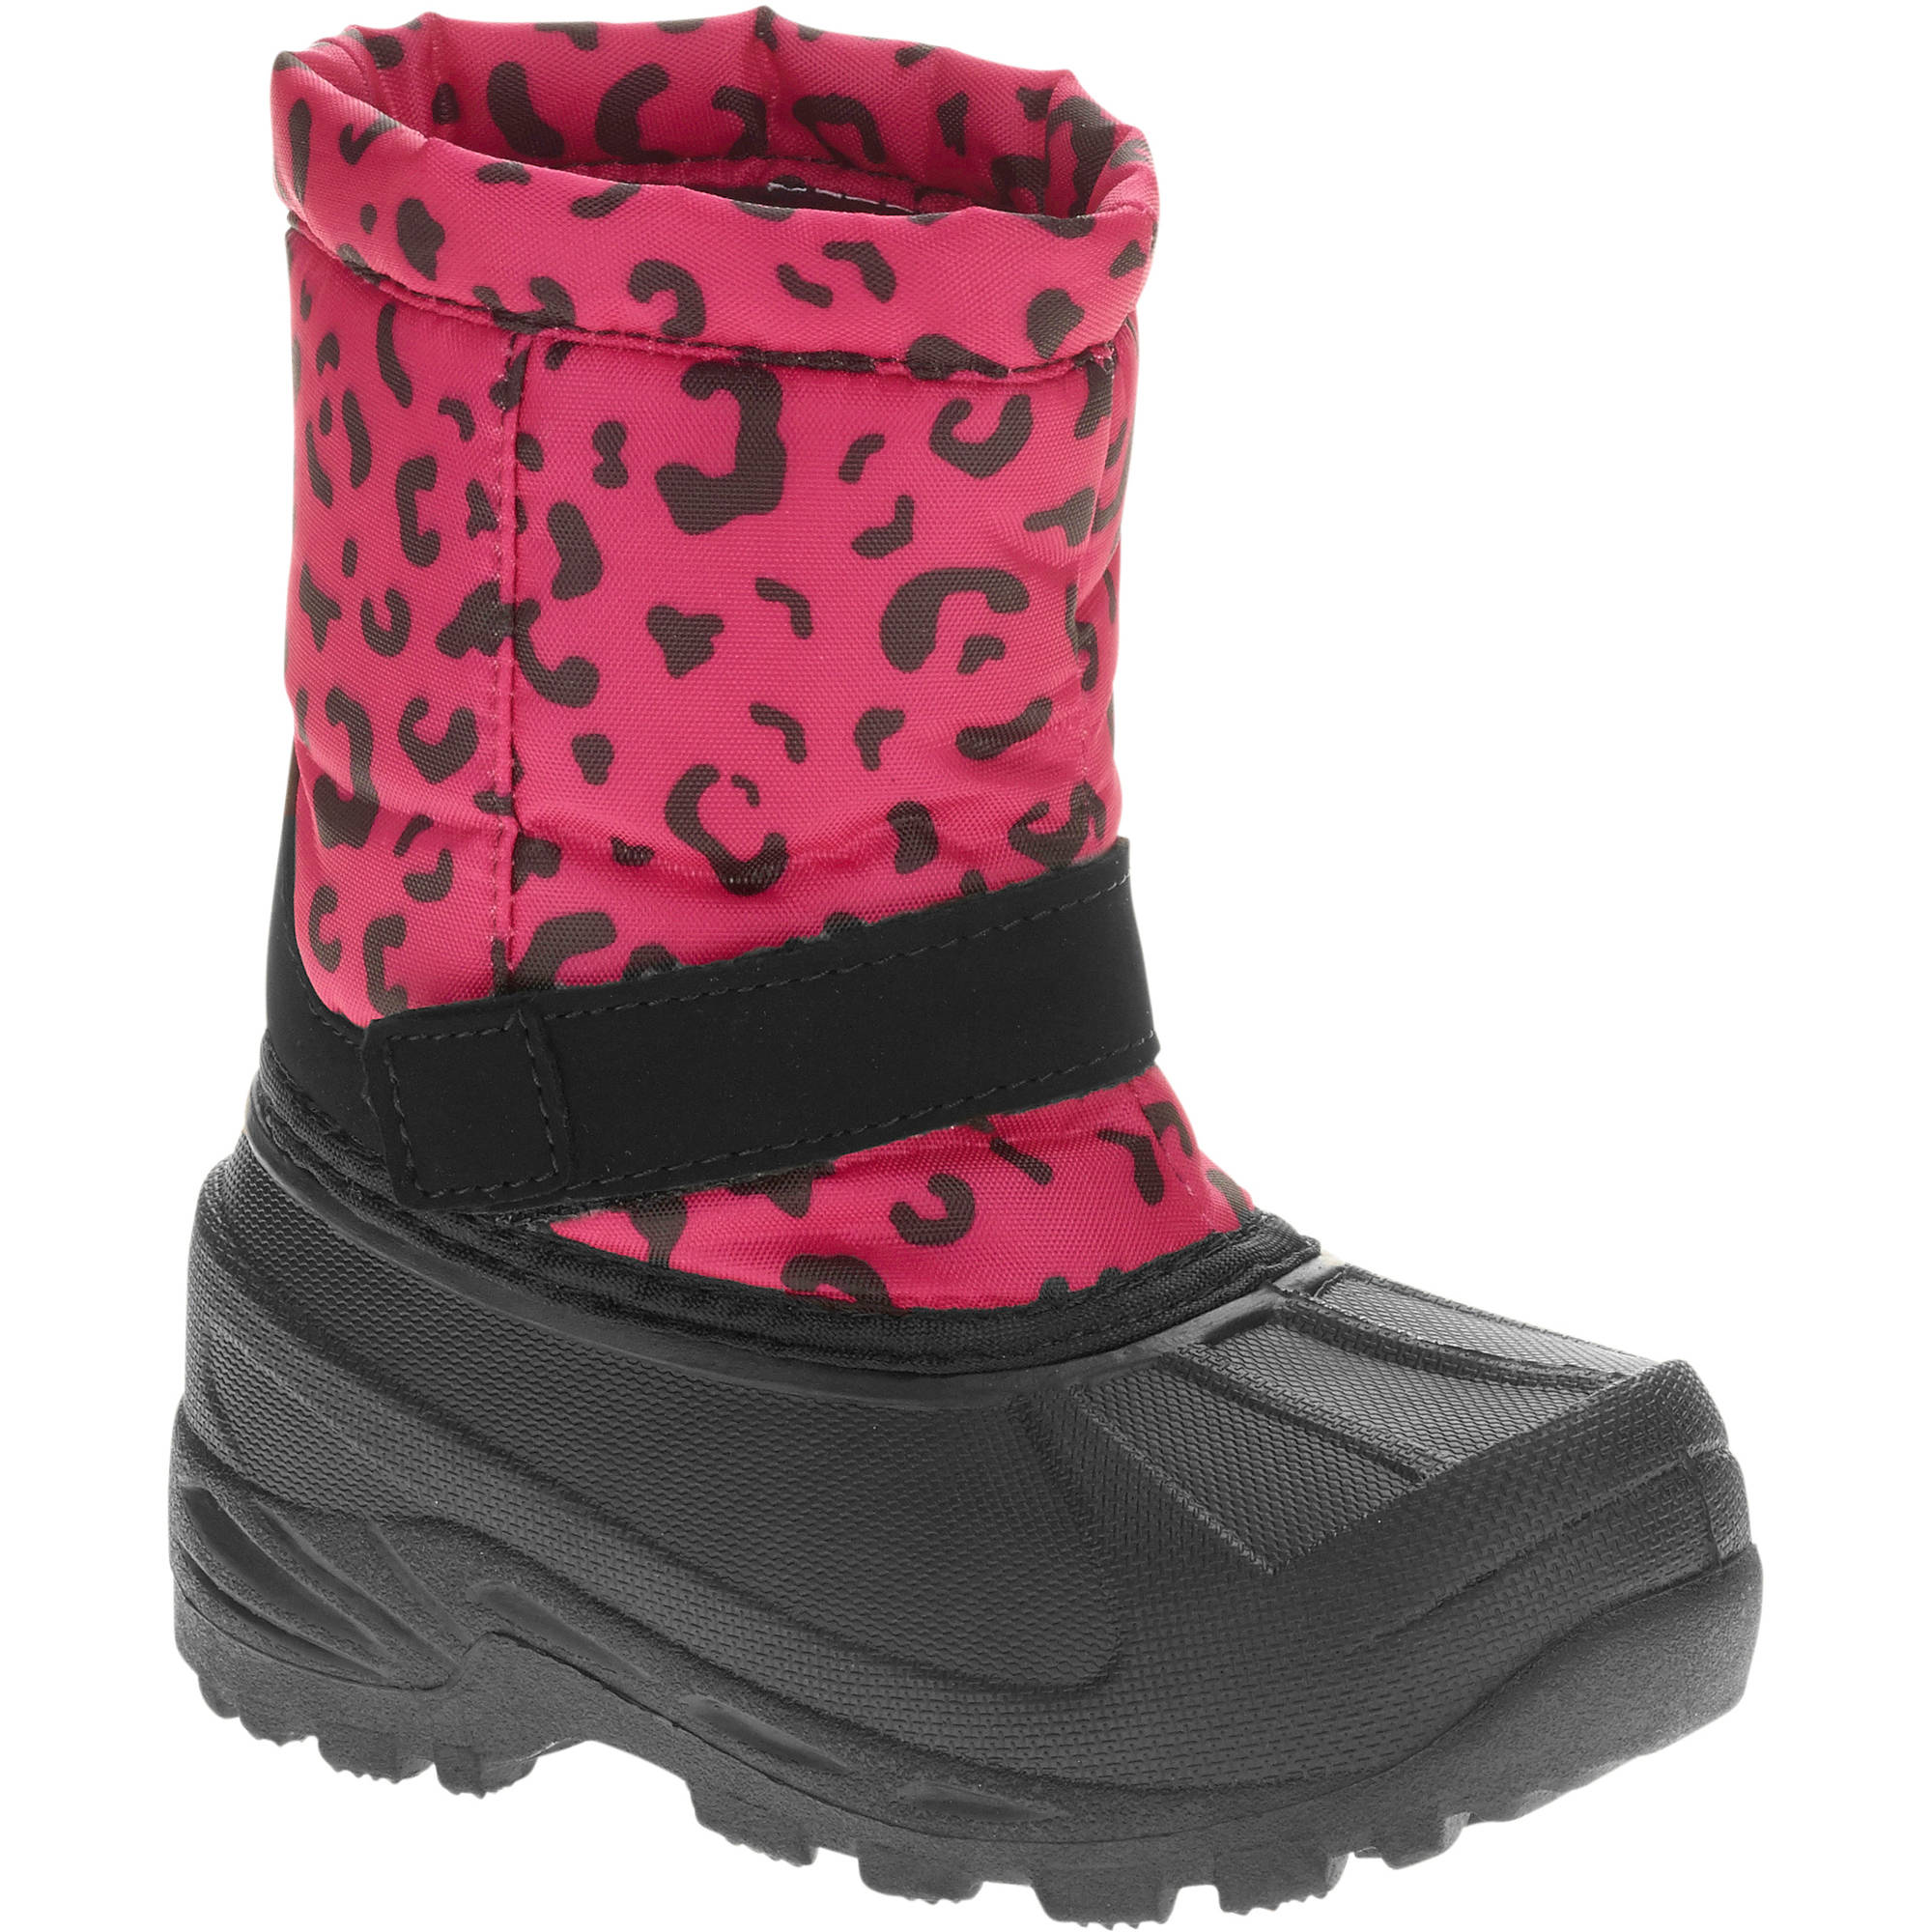 Toddler Girl's Classic Value Winter Boot